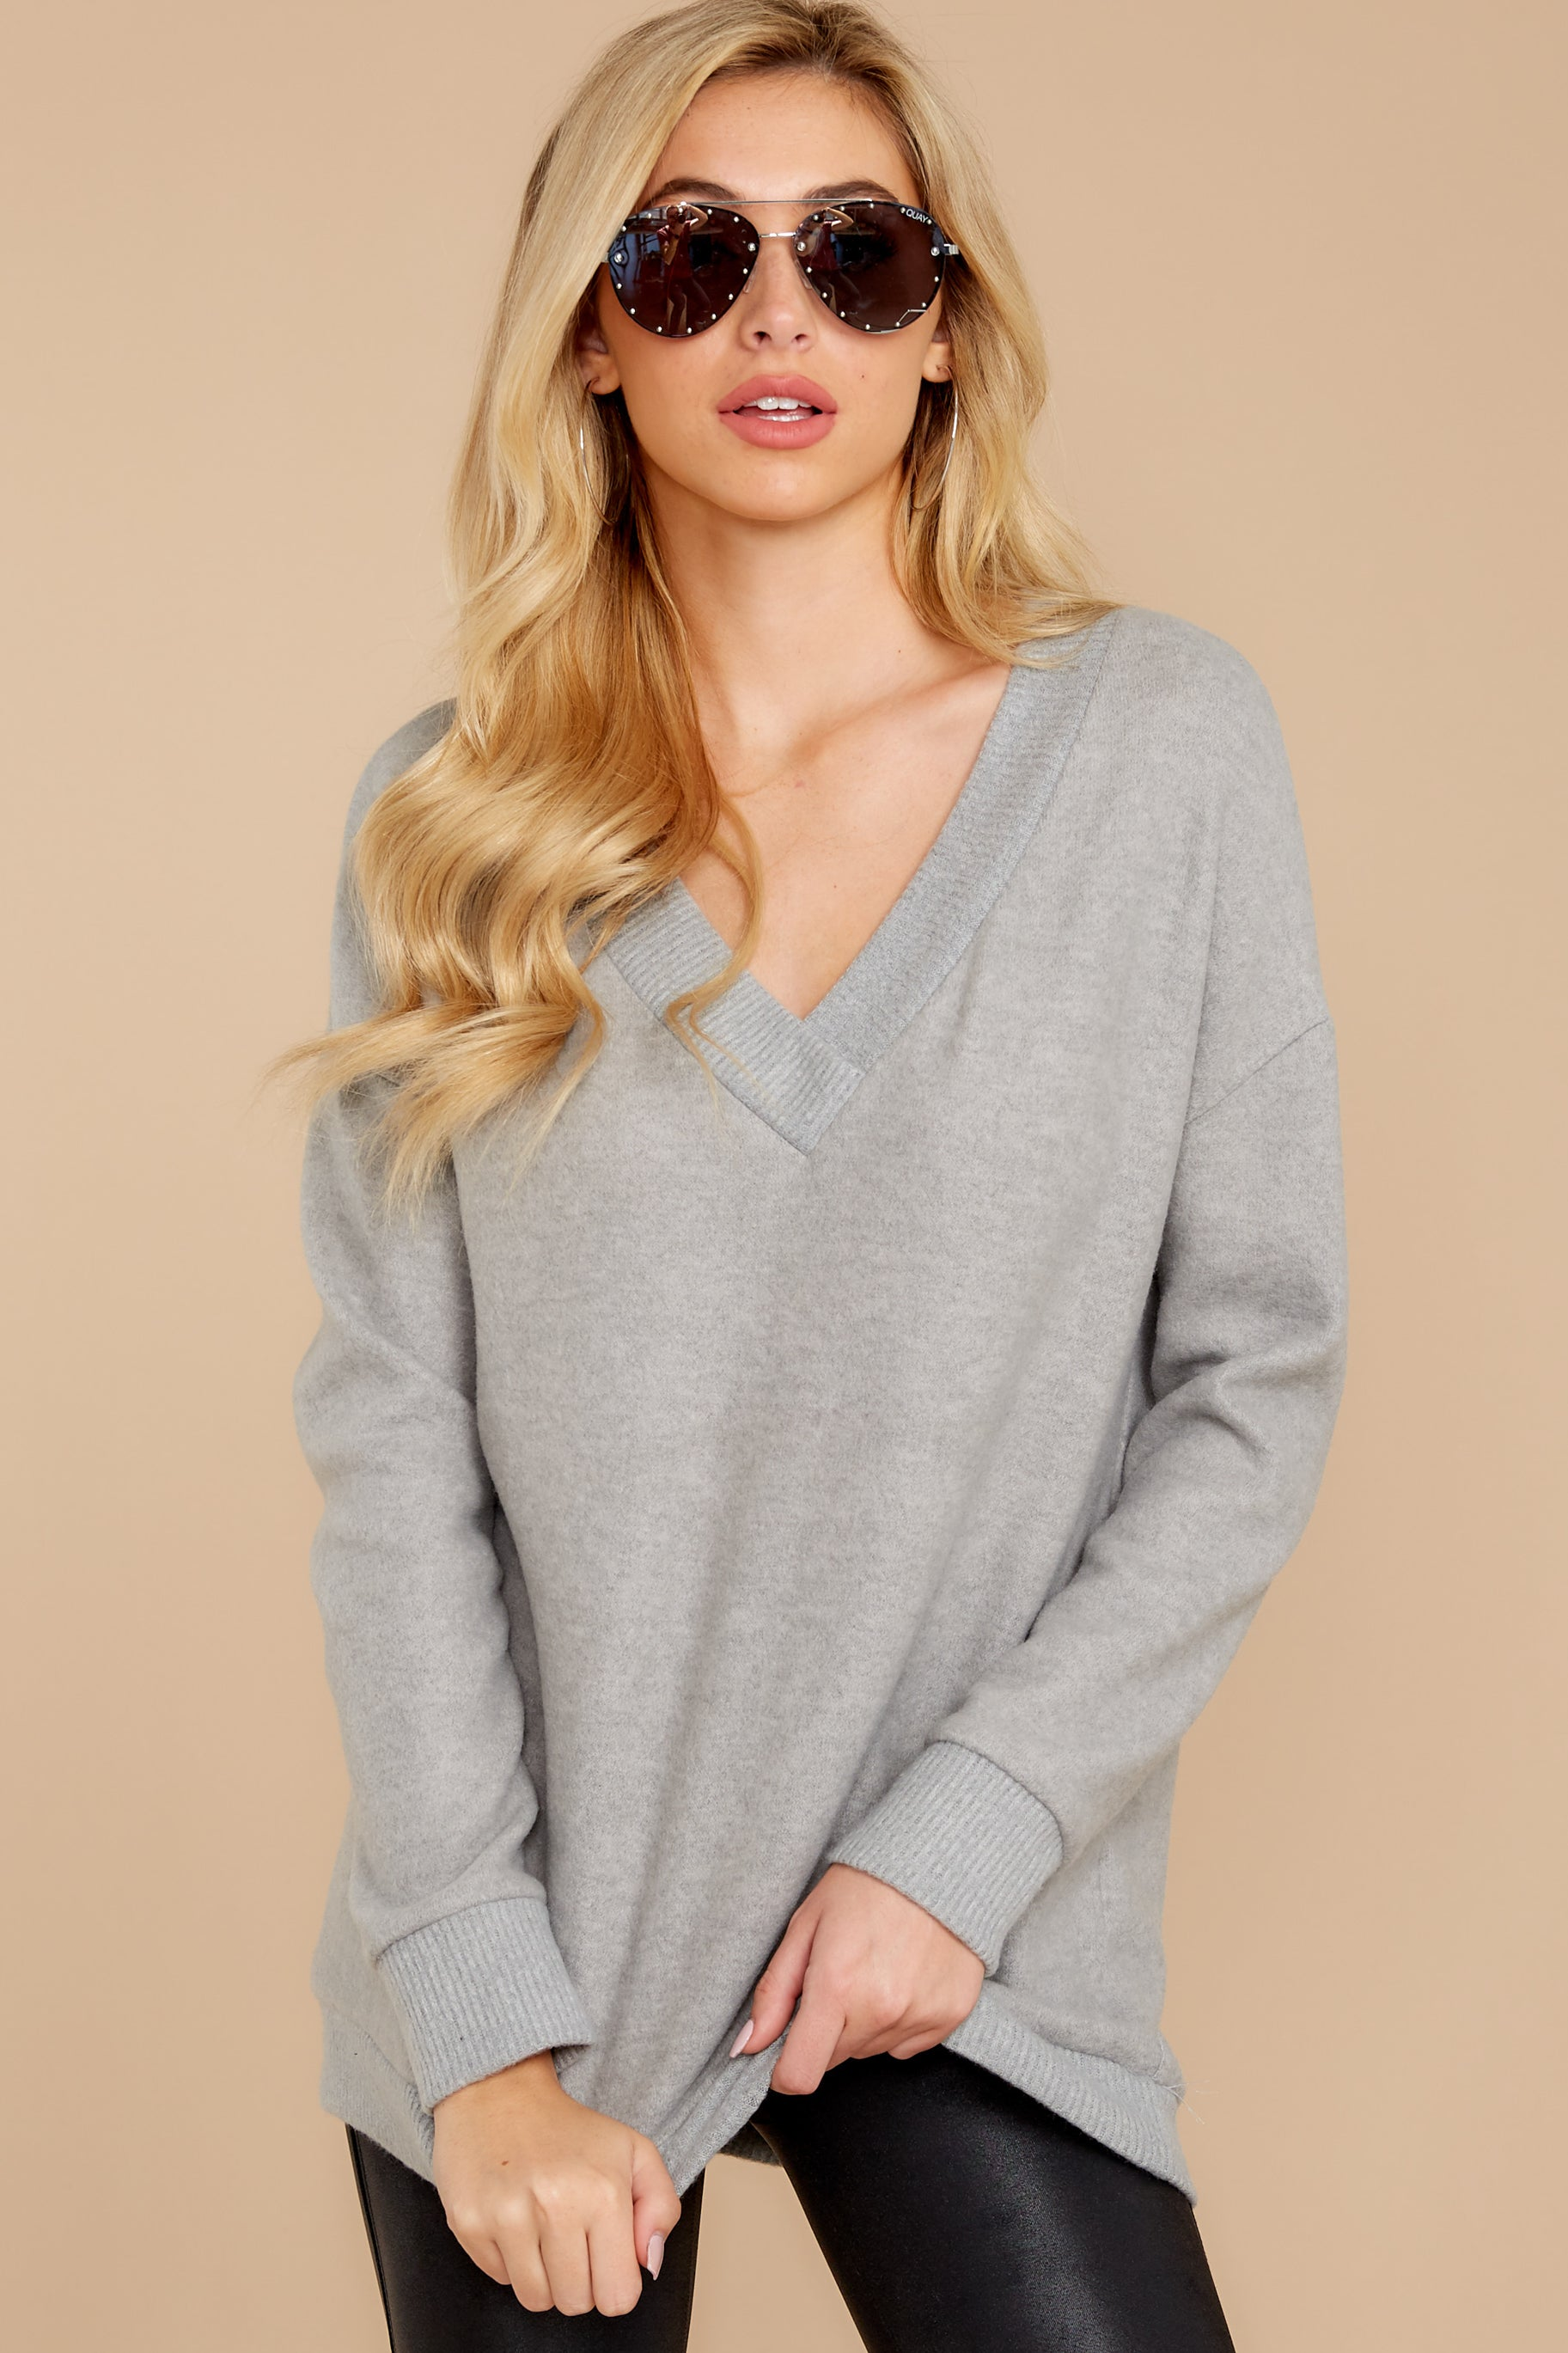 4 Soon Enough Heather Grey Sweater at reddressboutique.com